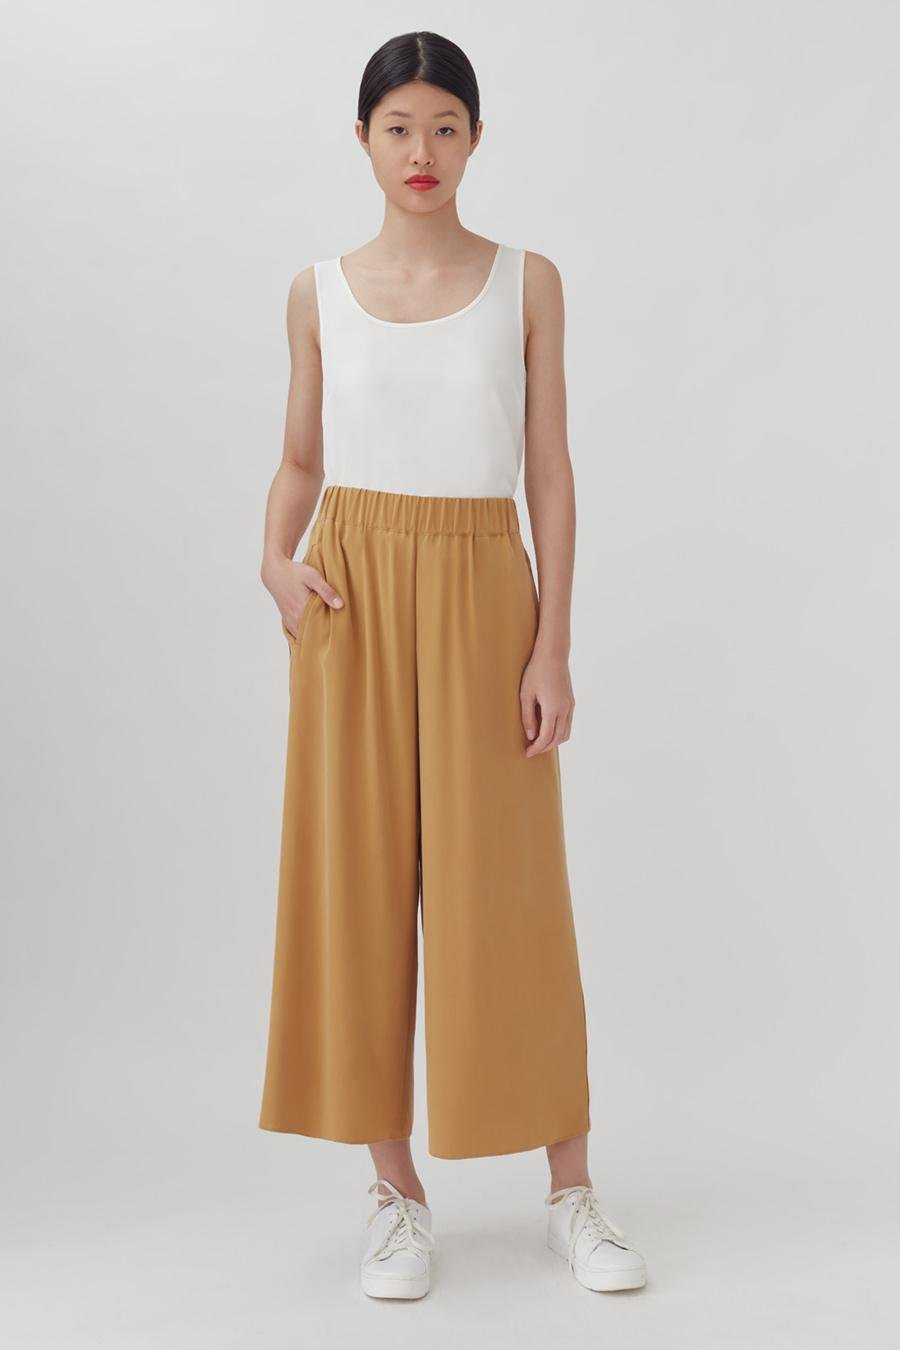 Women's Wide-Leg Cropped Pant in Honey | Size: XS | Washable Silk by Cuyana 1